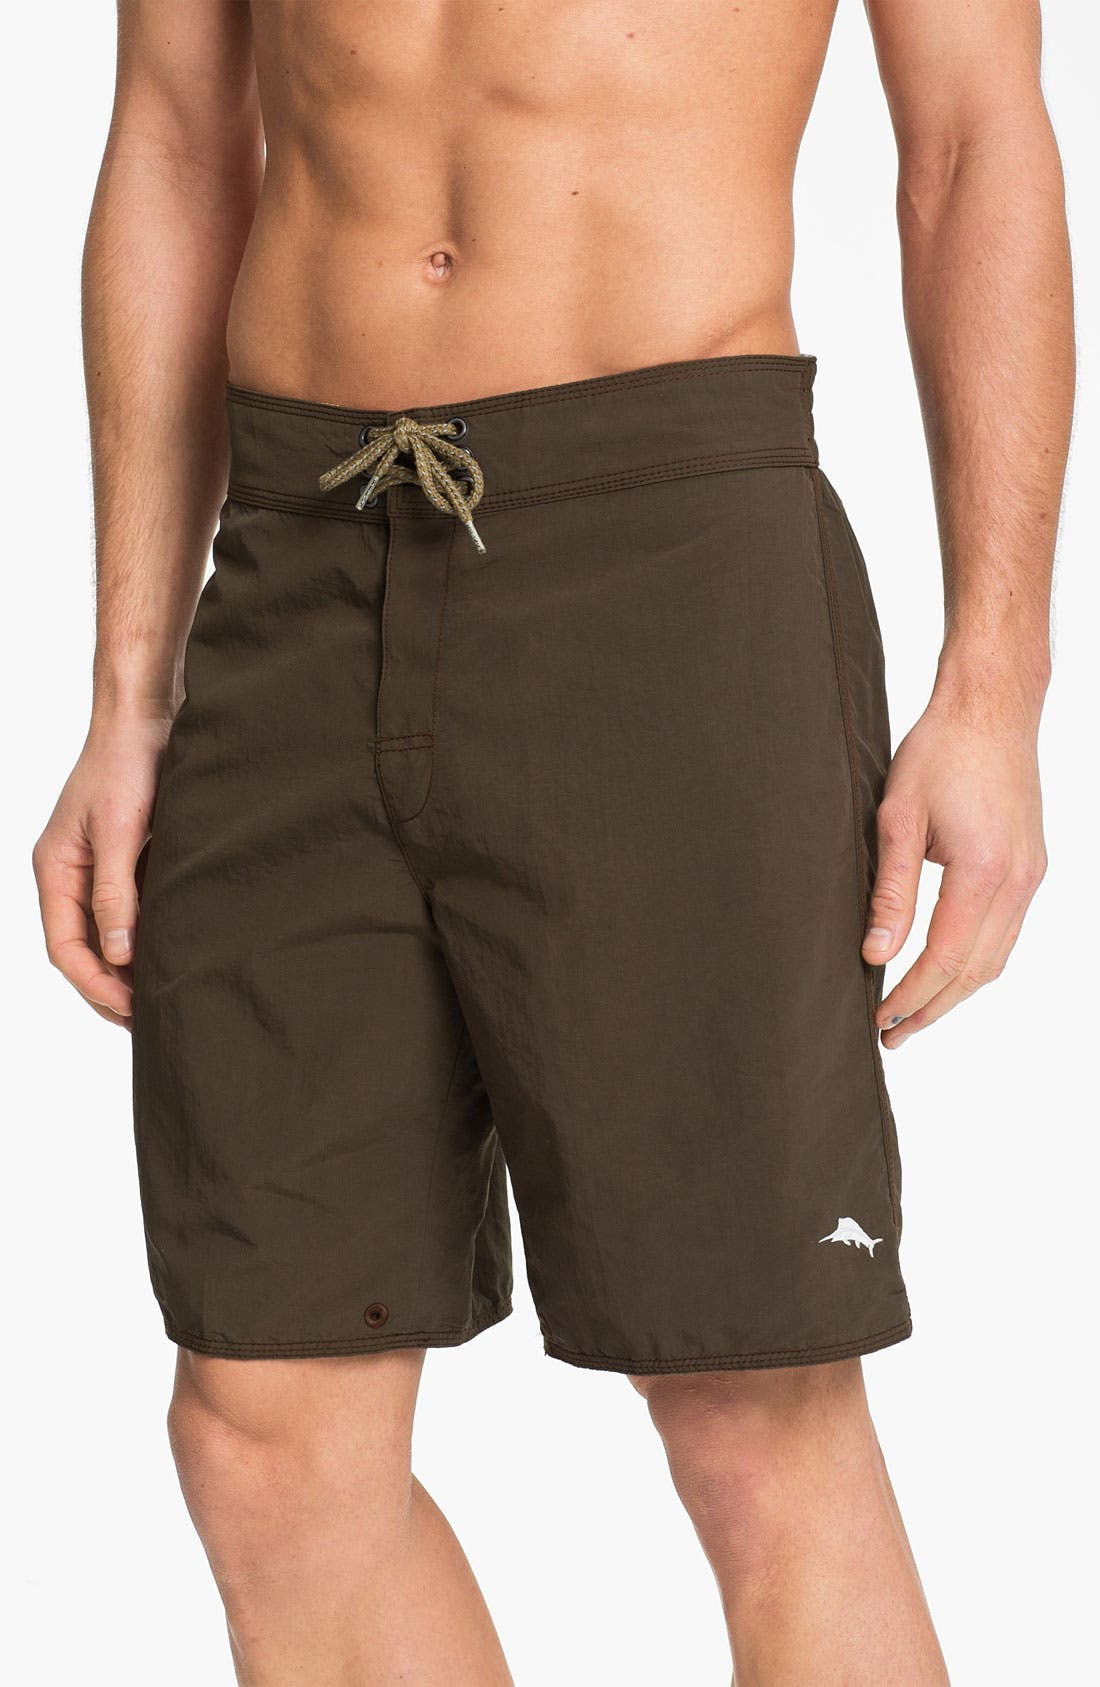 Alternate Image 2  - Tommy Bahama Relax 'Fern Baby Fern' Reversible Board Shorts (Online Only)